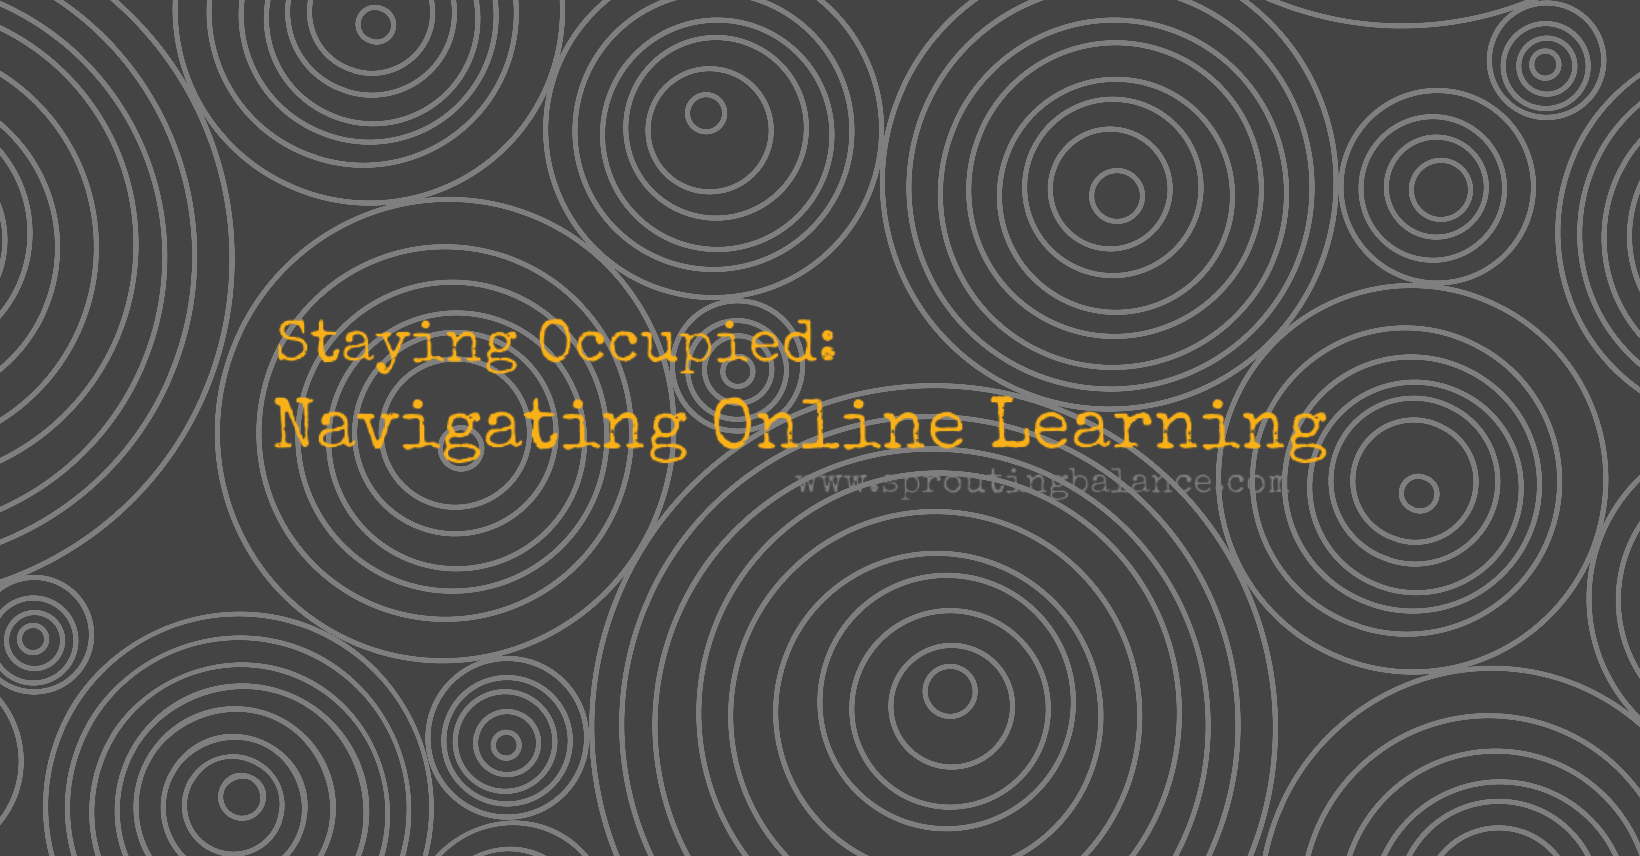 Staying Occupied: Navigating Online Learning | www.sproutingbalance.com | #stayhome #socialdistancing #bepositive